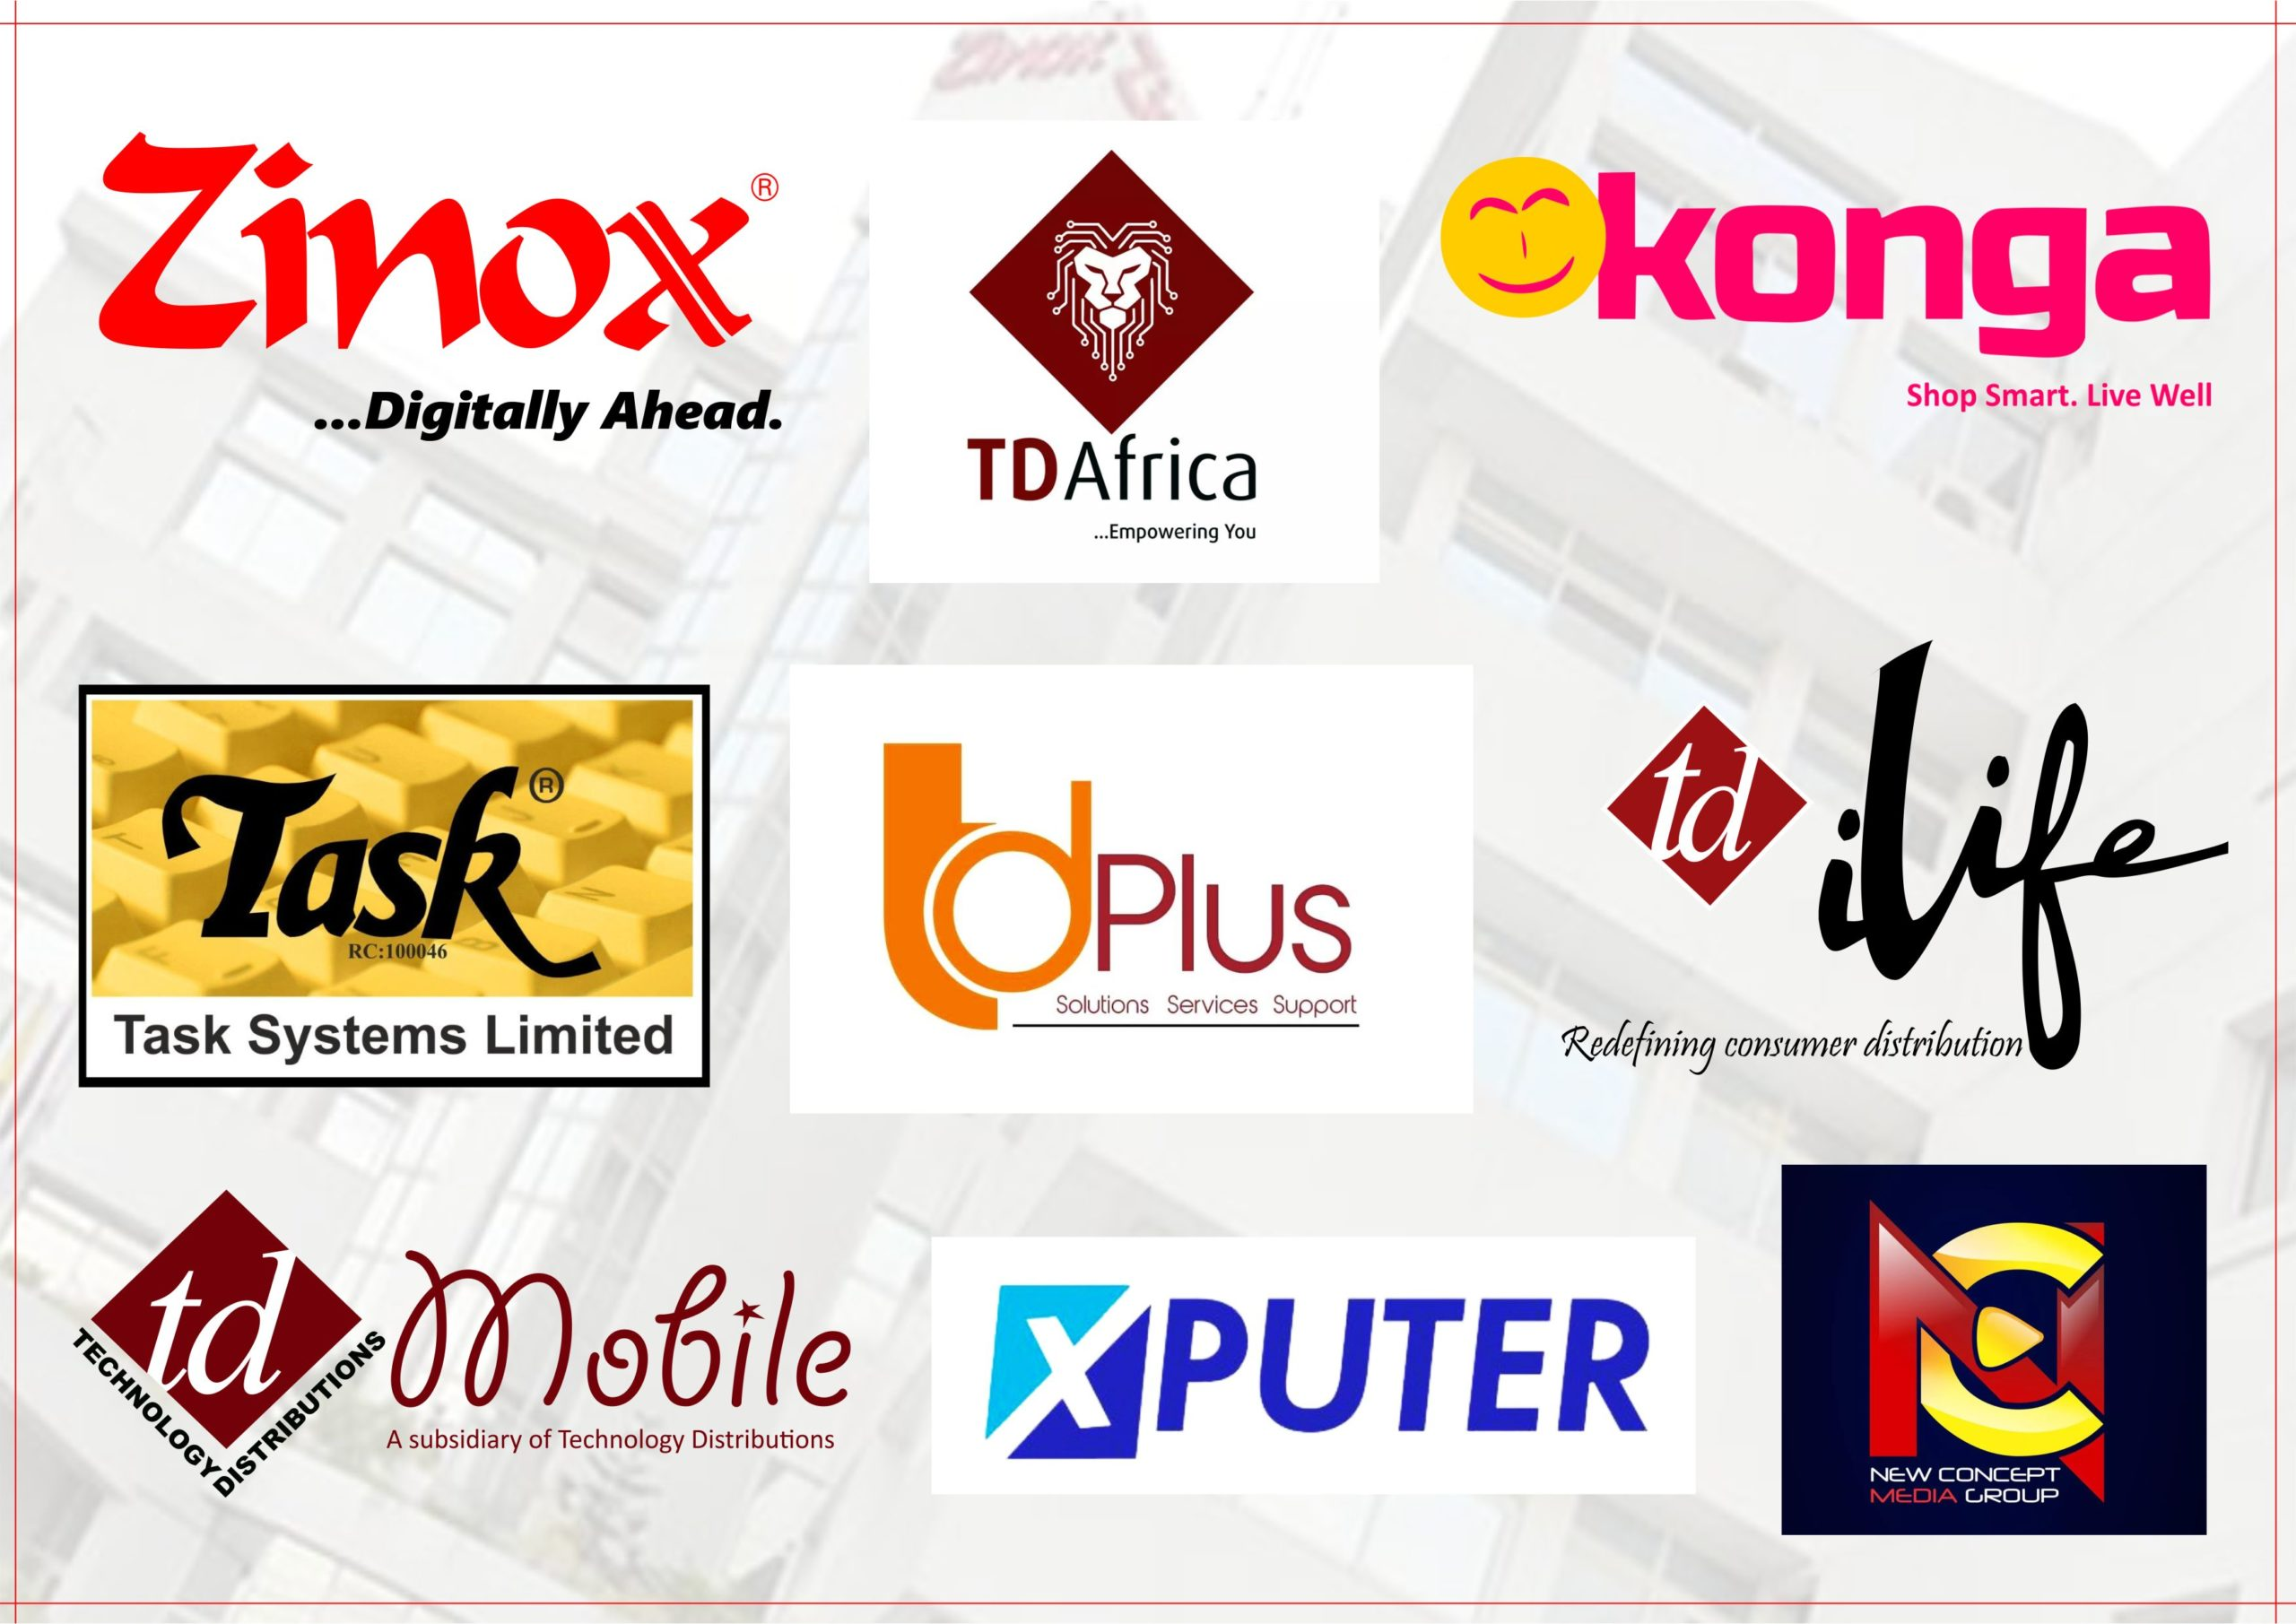 Lockdown Palliatives: Zinox Group, Konga To Feed Over 7000 Families For Two Weeks Through Staff - Brand Spur